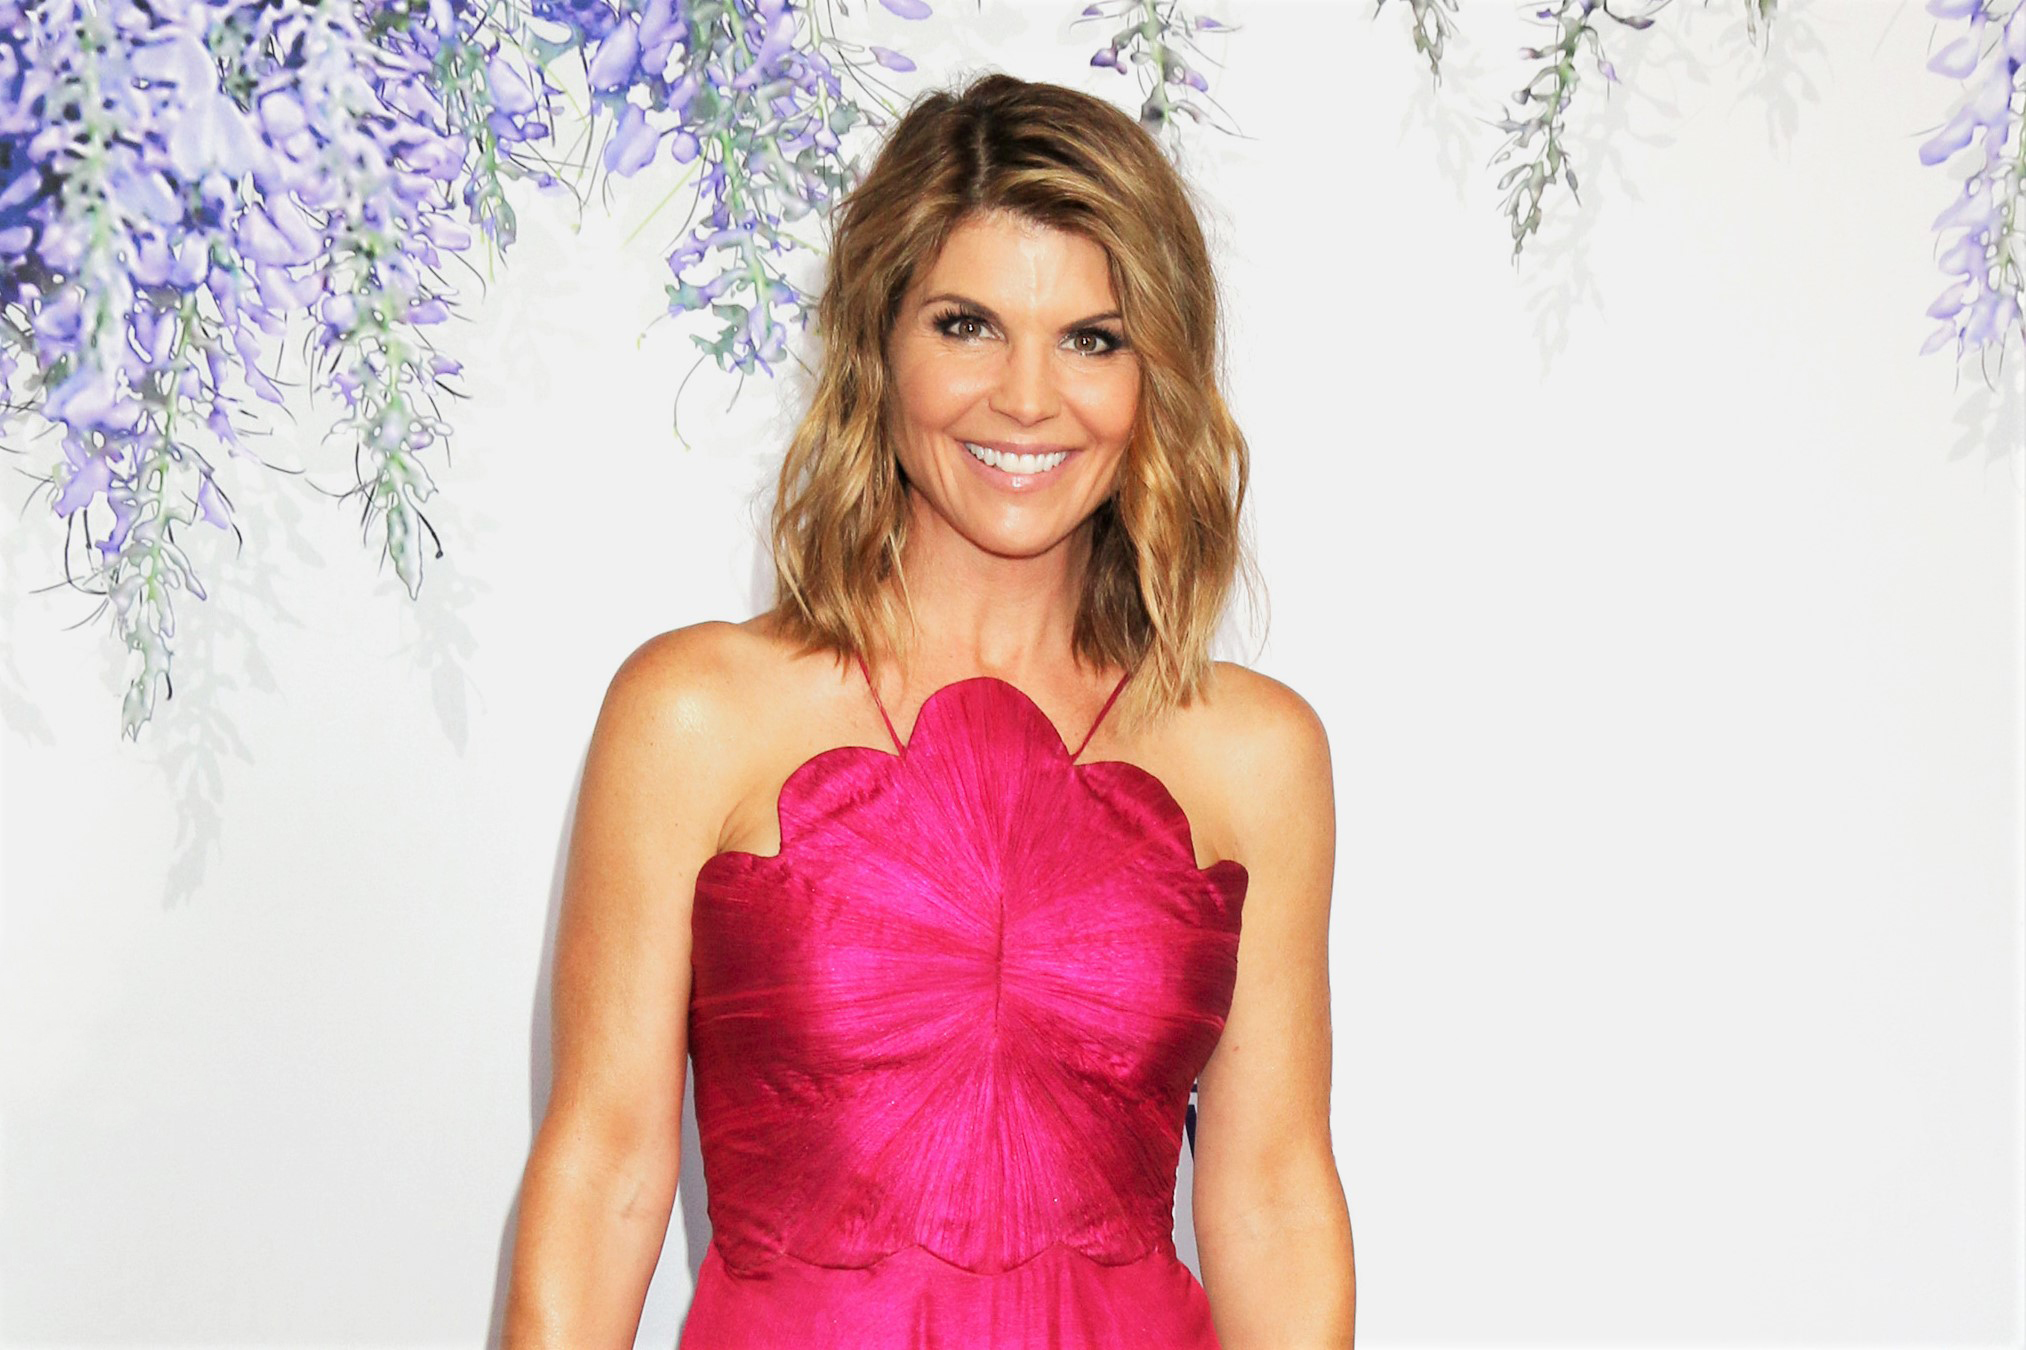 Lori Loughlin and Mossimo Giannulli Are 'Outraged' That They're Being Called 'Cheaters'